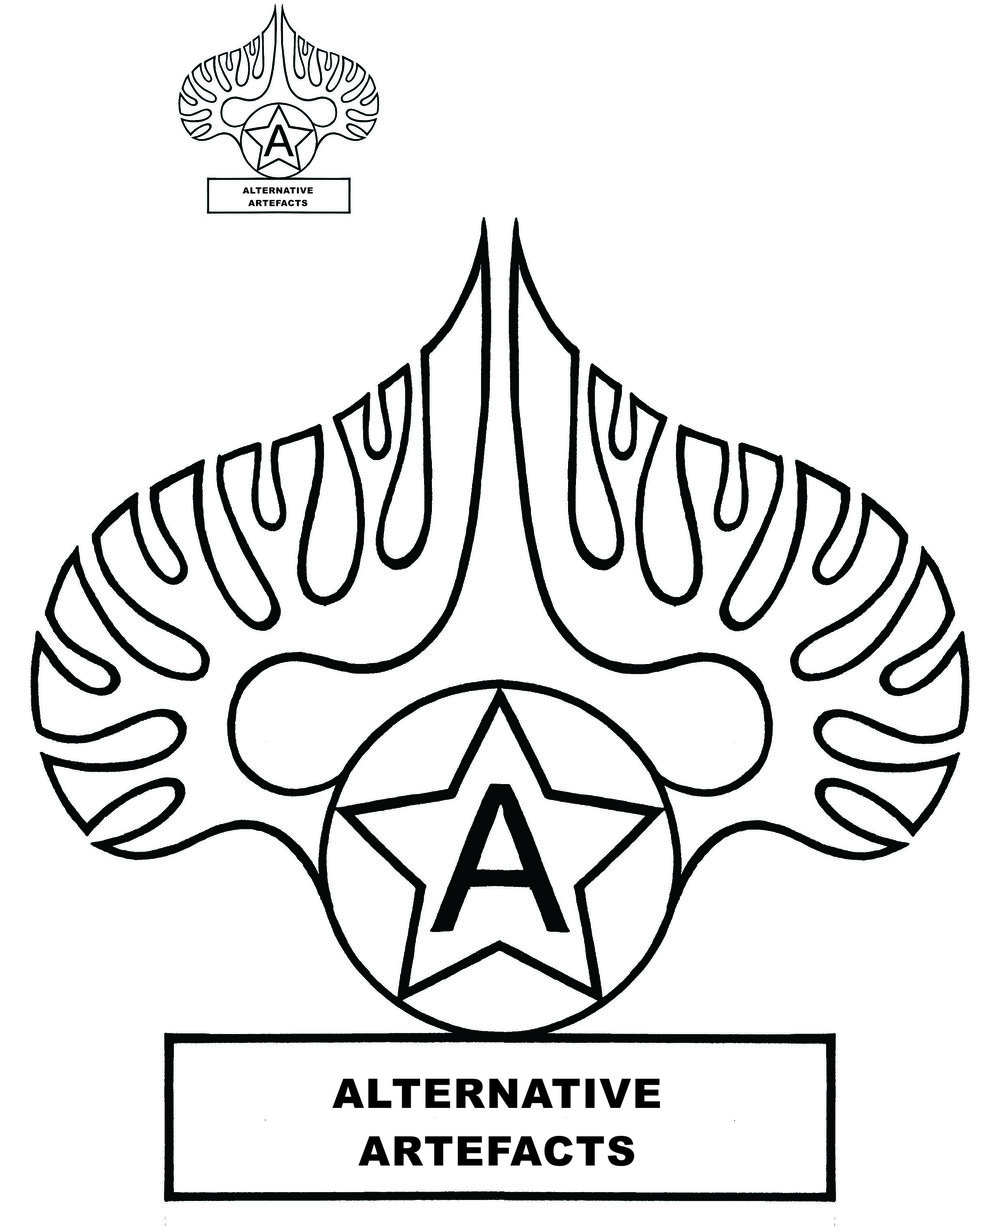 Alternative Artefacts star logo Mar 31 '18 two.jpg